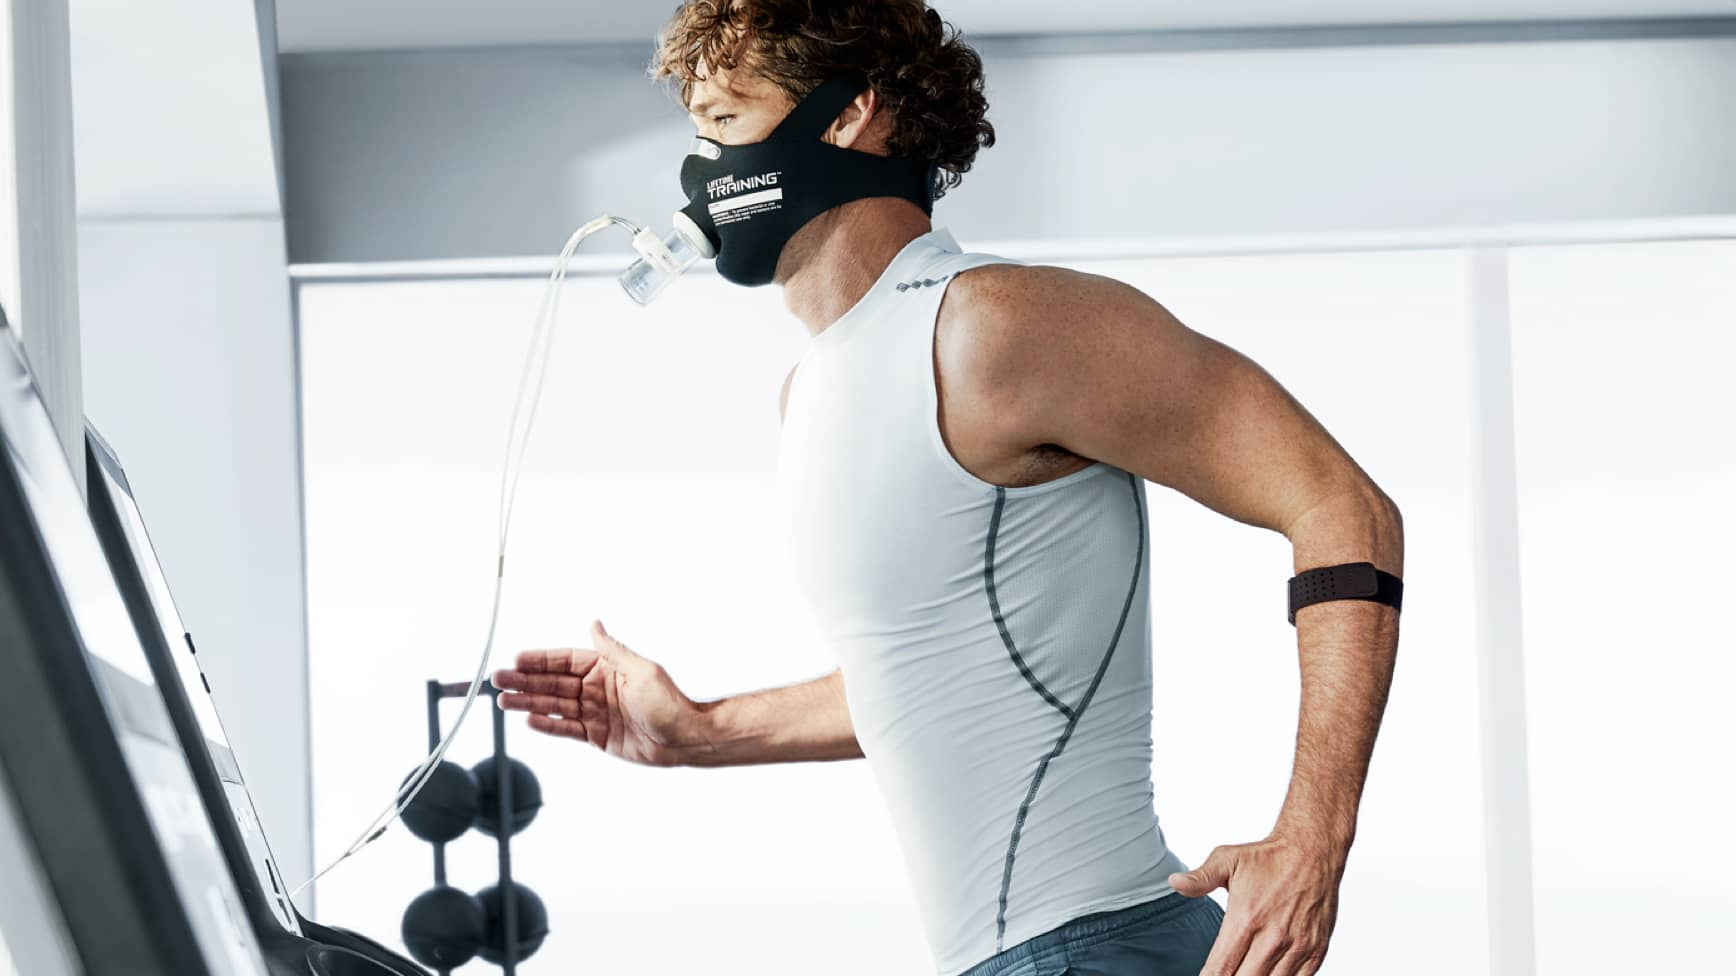 A Life Time member wearing a face mask and heart rate monitor runs on a treadmill